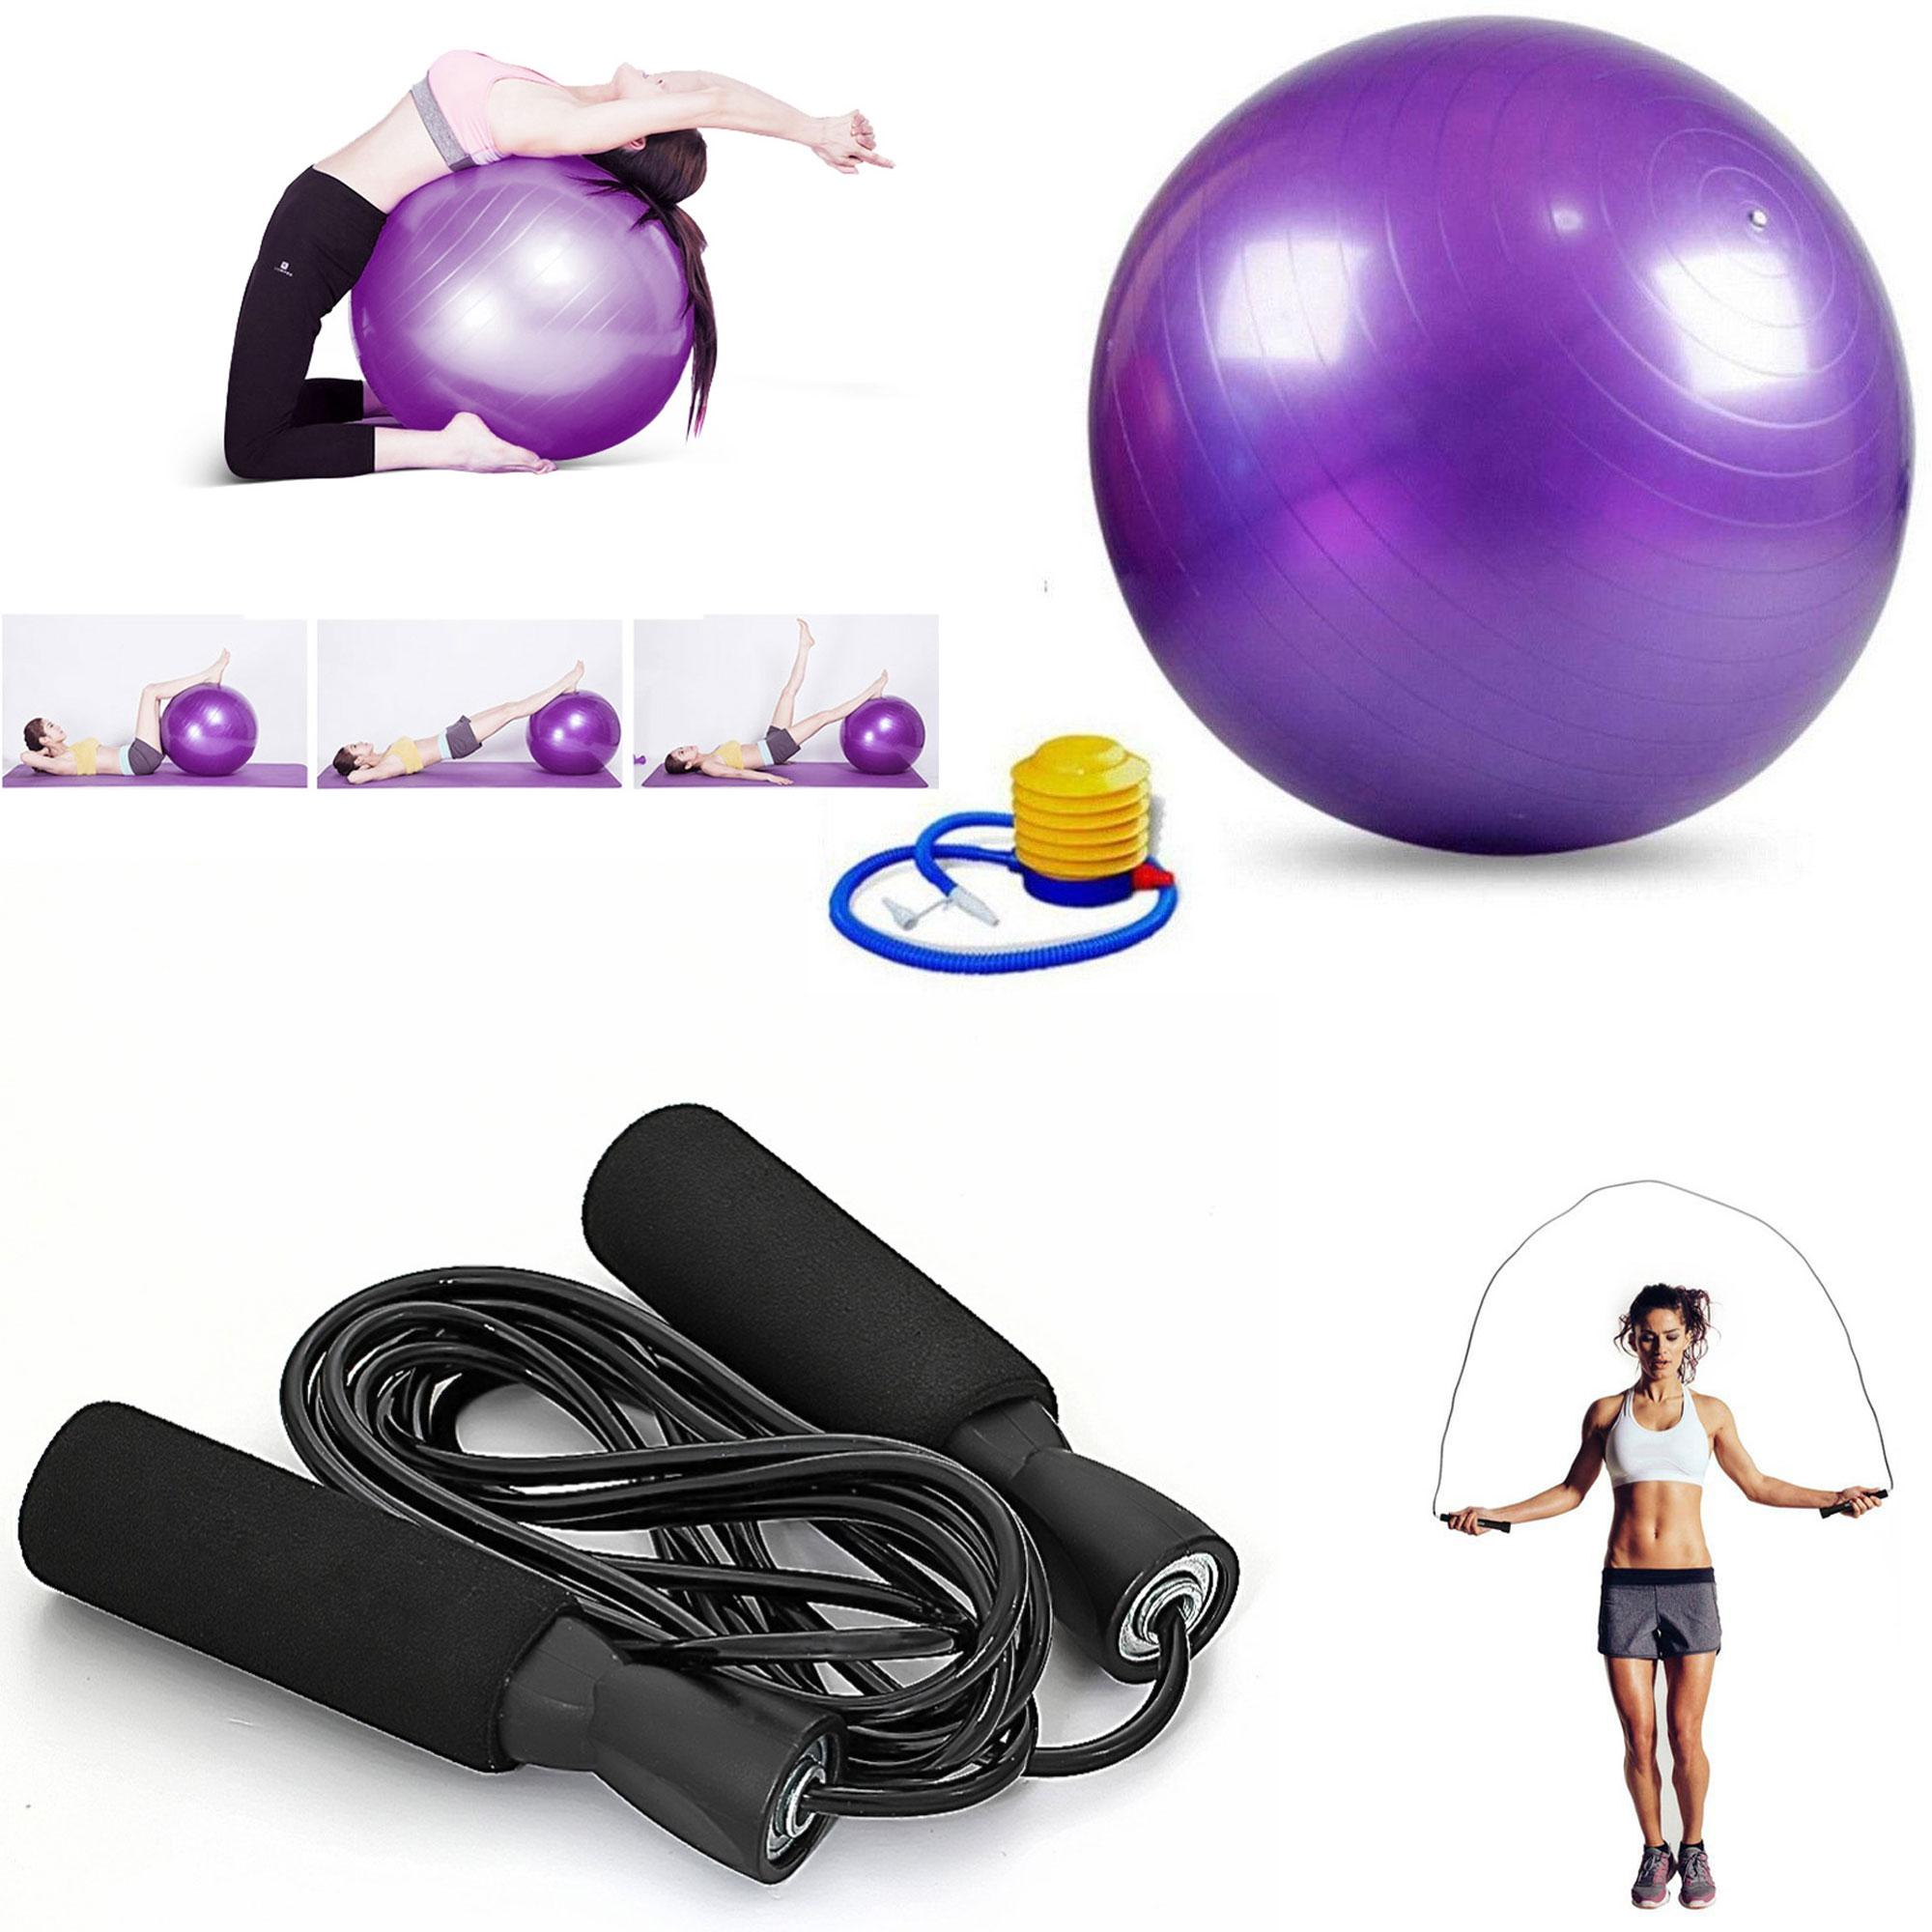 Gym Ball (purple) With Exercise Tool Boxing Skipping Jump Rope Adjustable Bearing Speed Fitness (black) By Gonzalez General Merchandise.